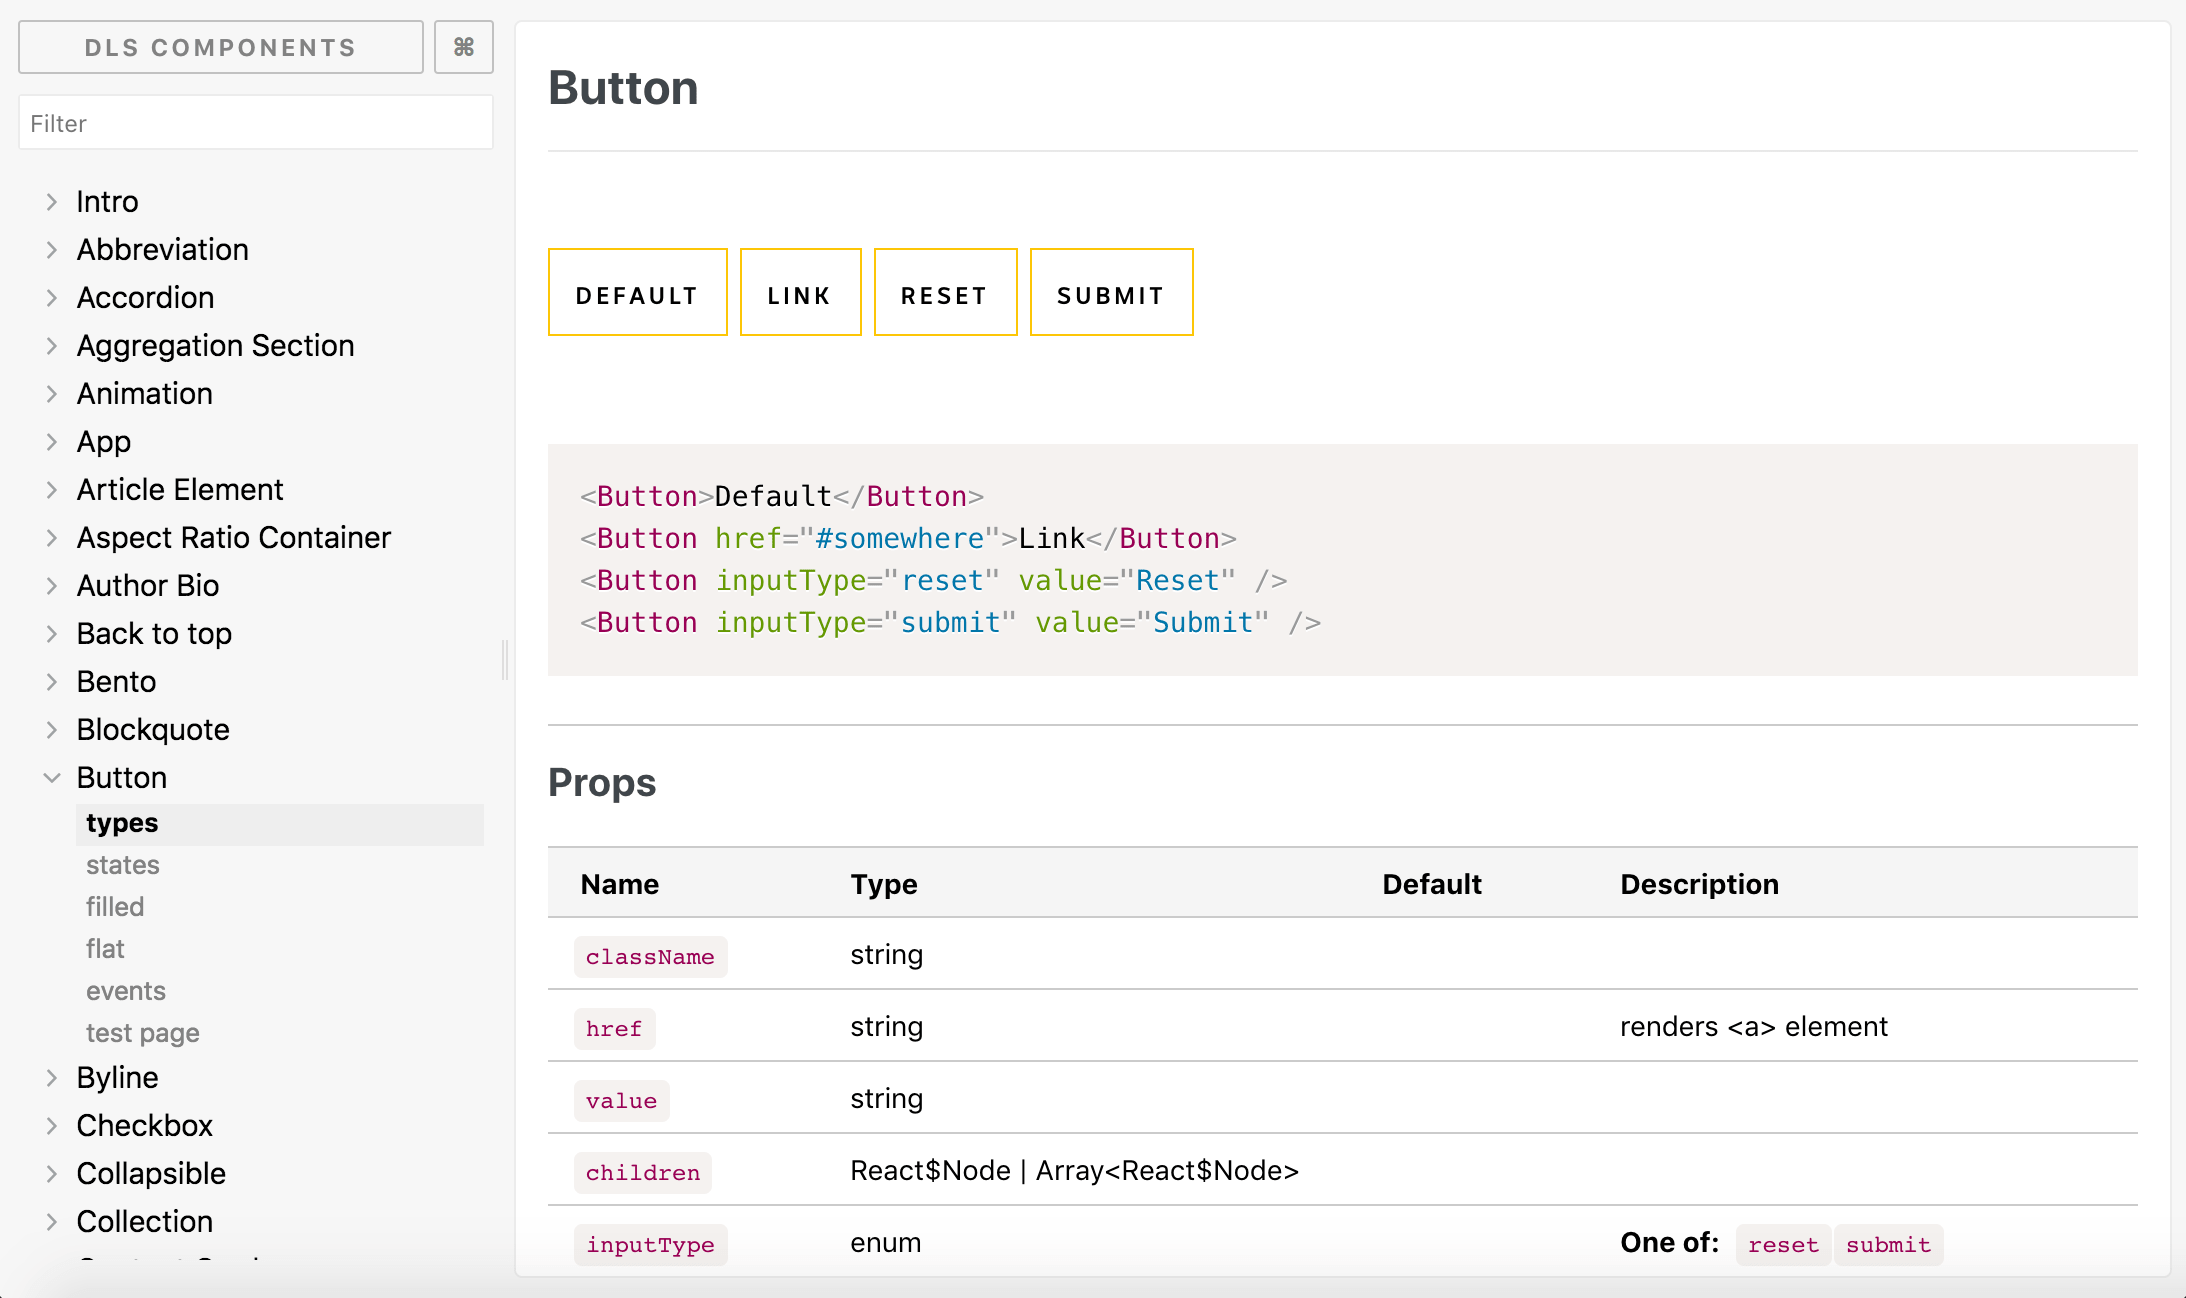 Screenshot of the Button component in our Storybook application